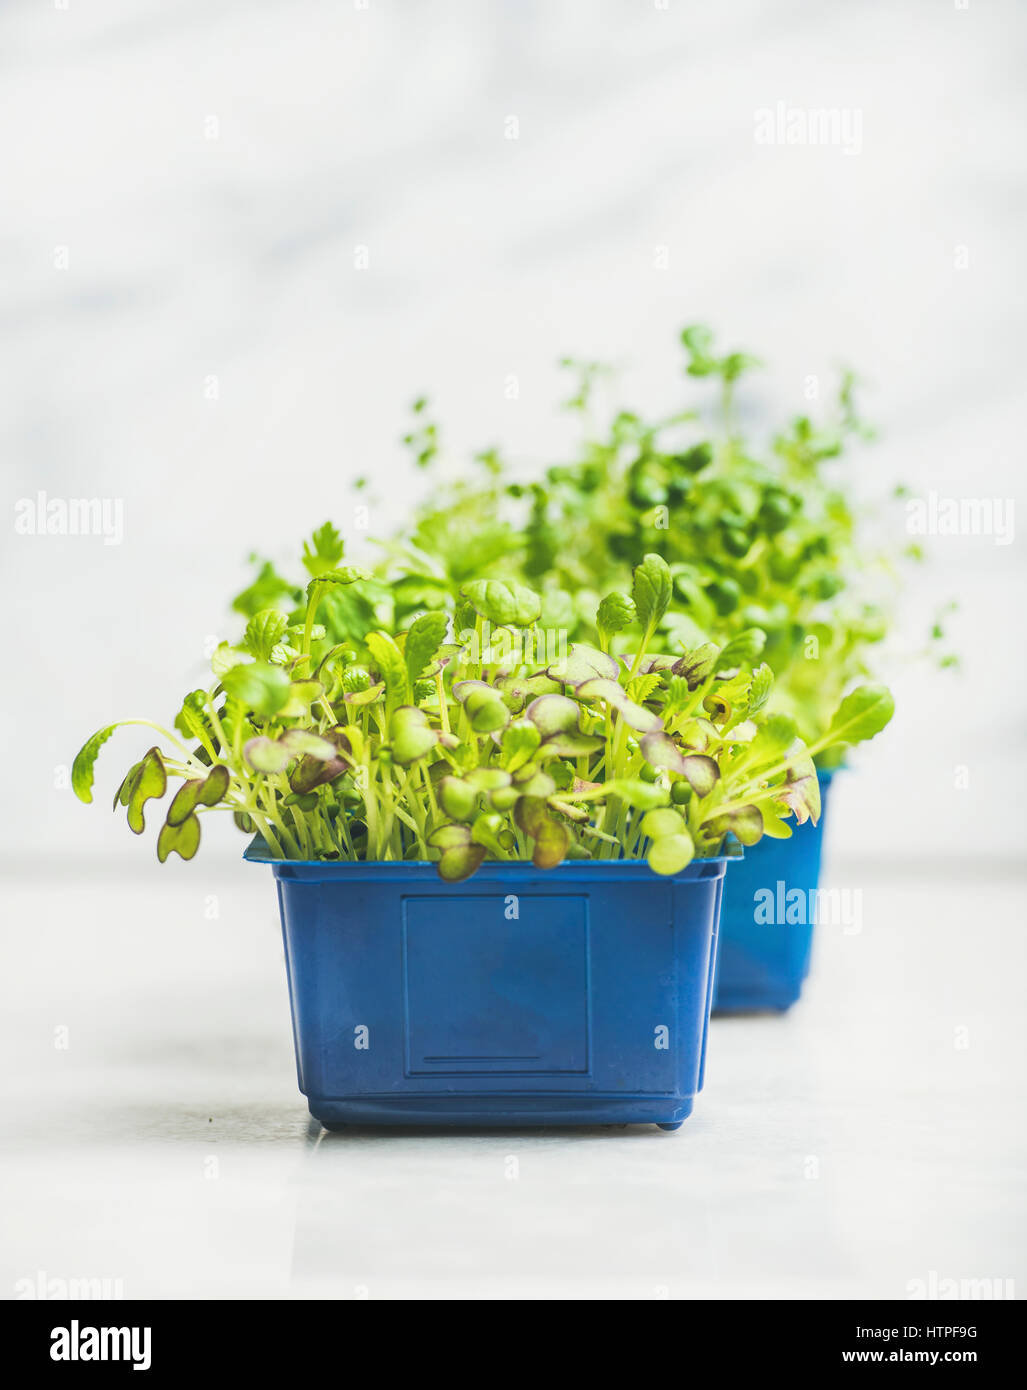 Fresh spring green live radish cress sprouts in blue plastic pots over white marble background for healthy eating, - Stock Image